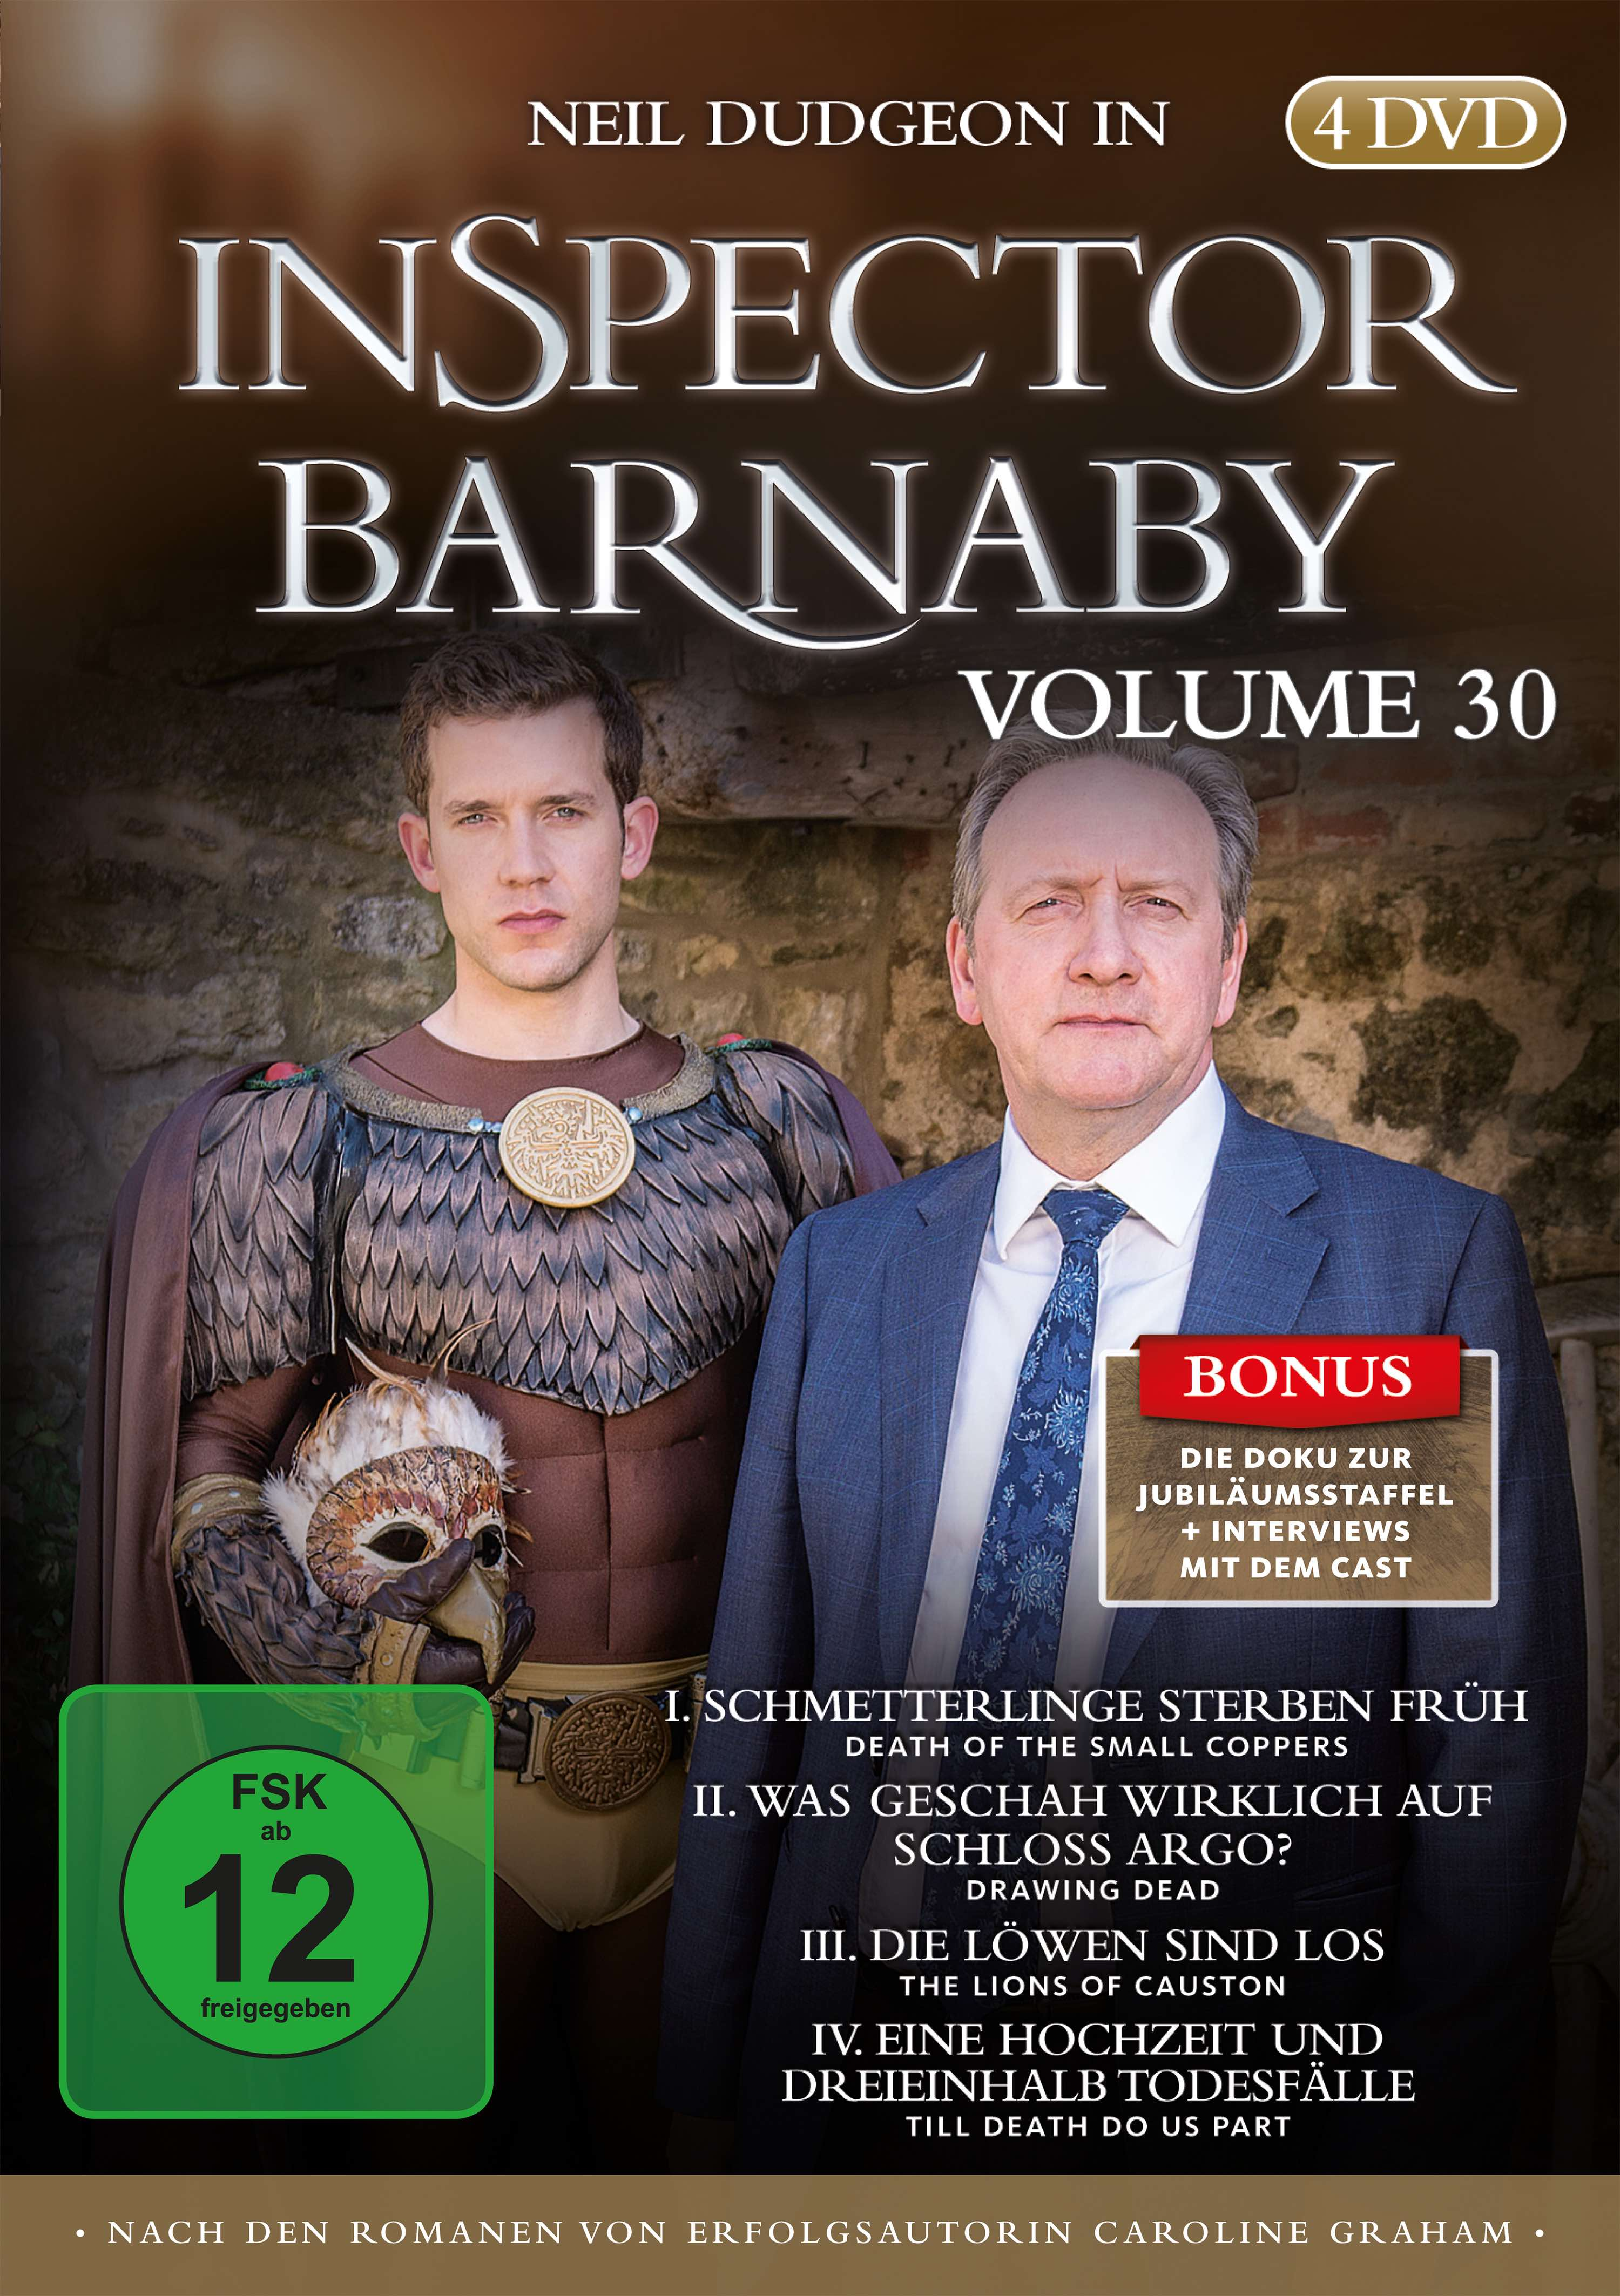 0214217ER2 InspectorBarnaby Vol30 DVD cover